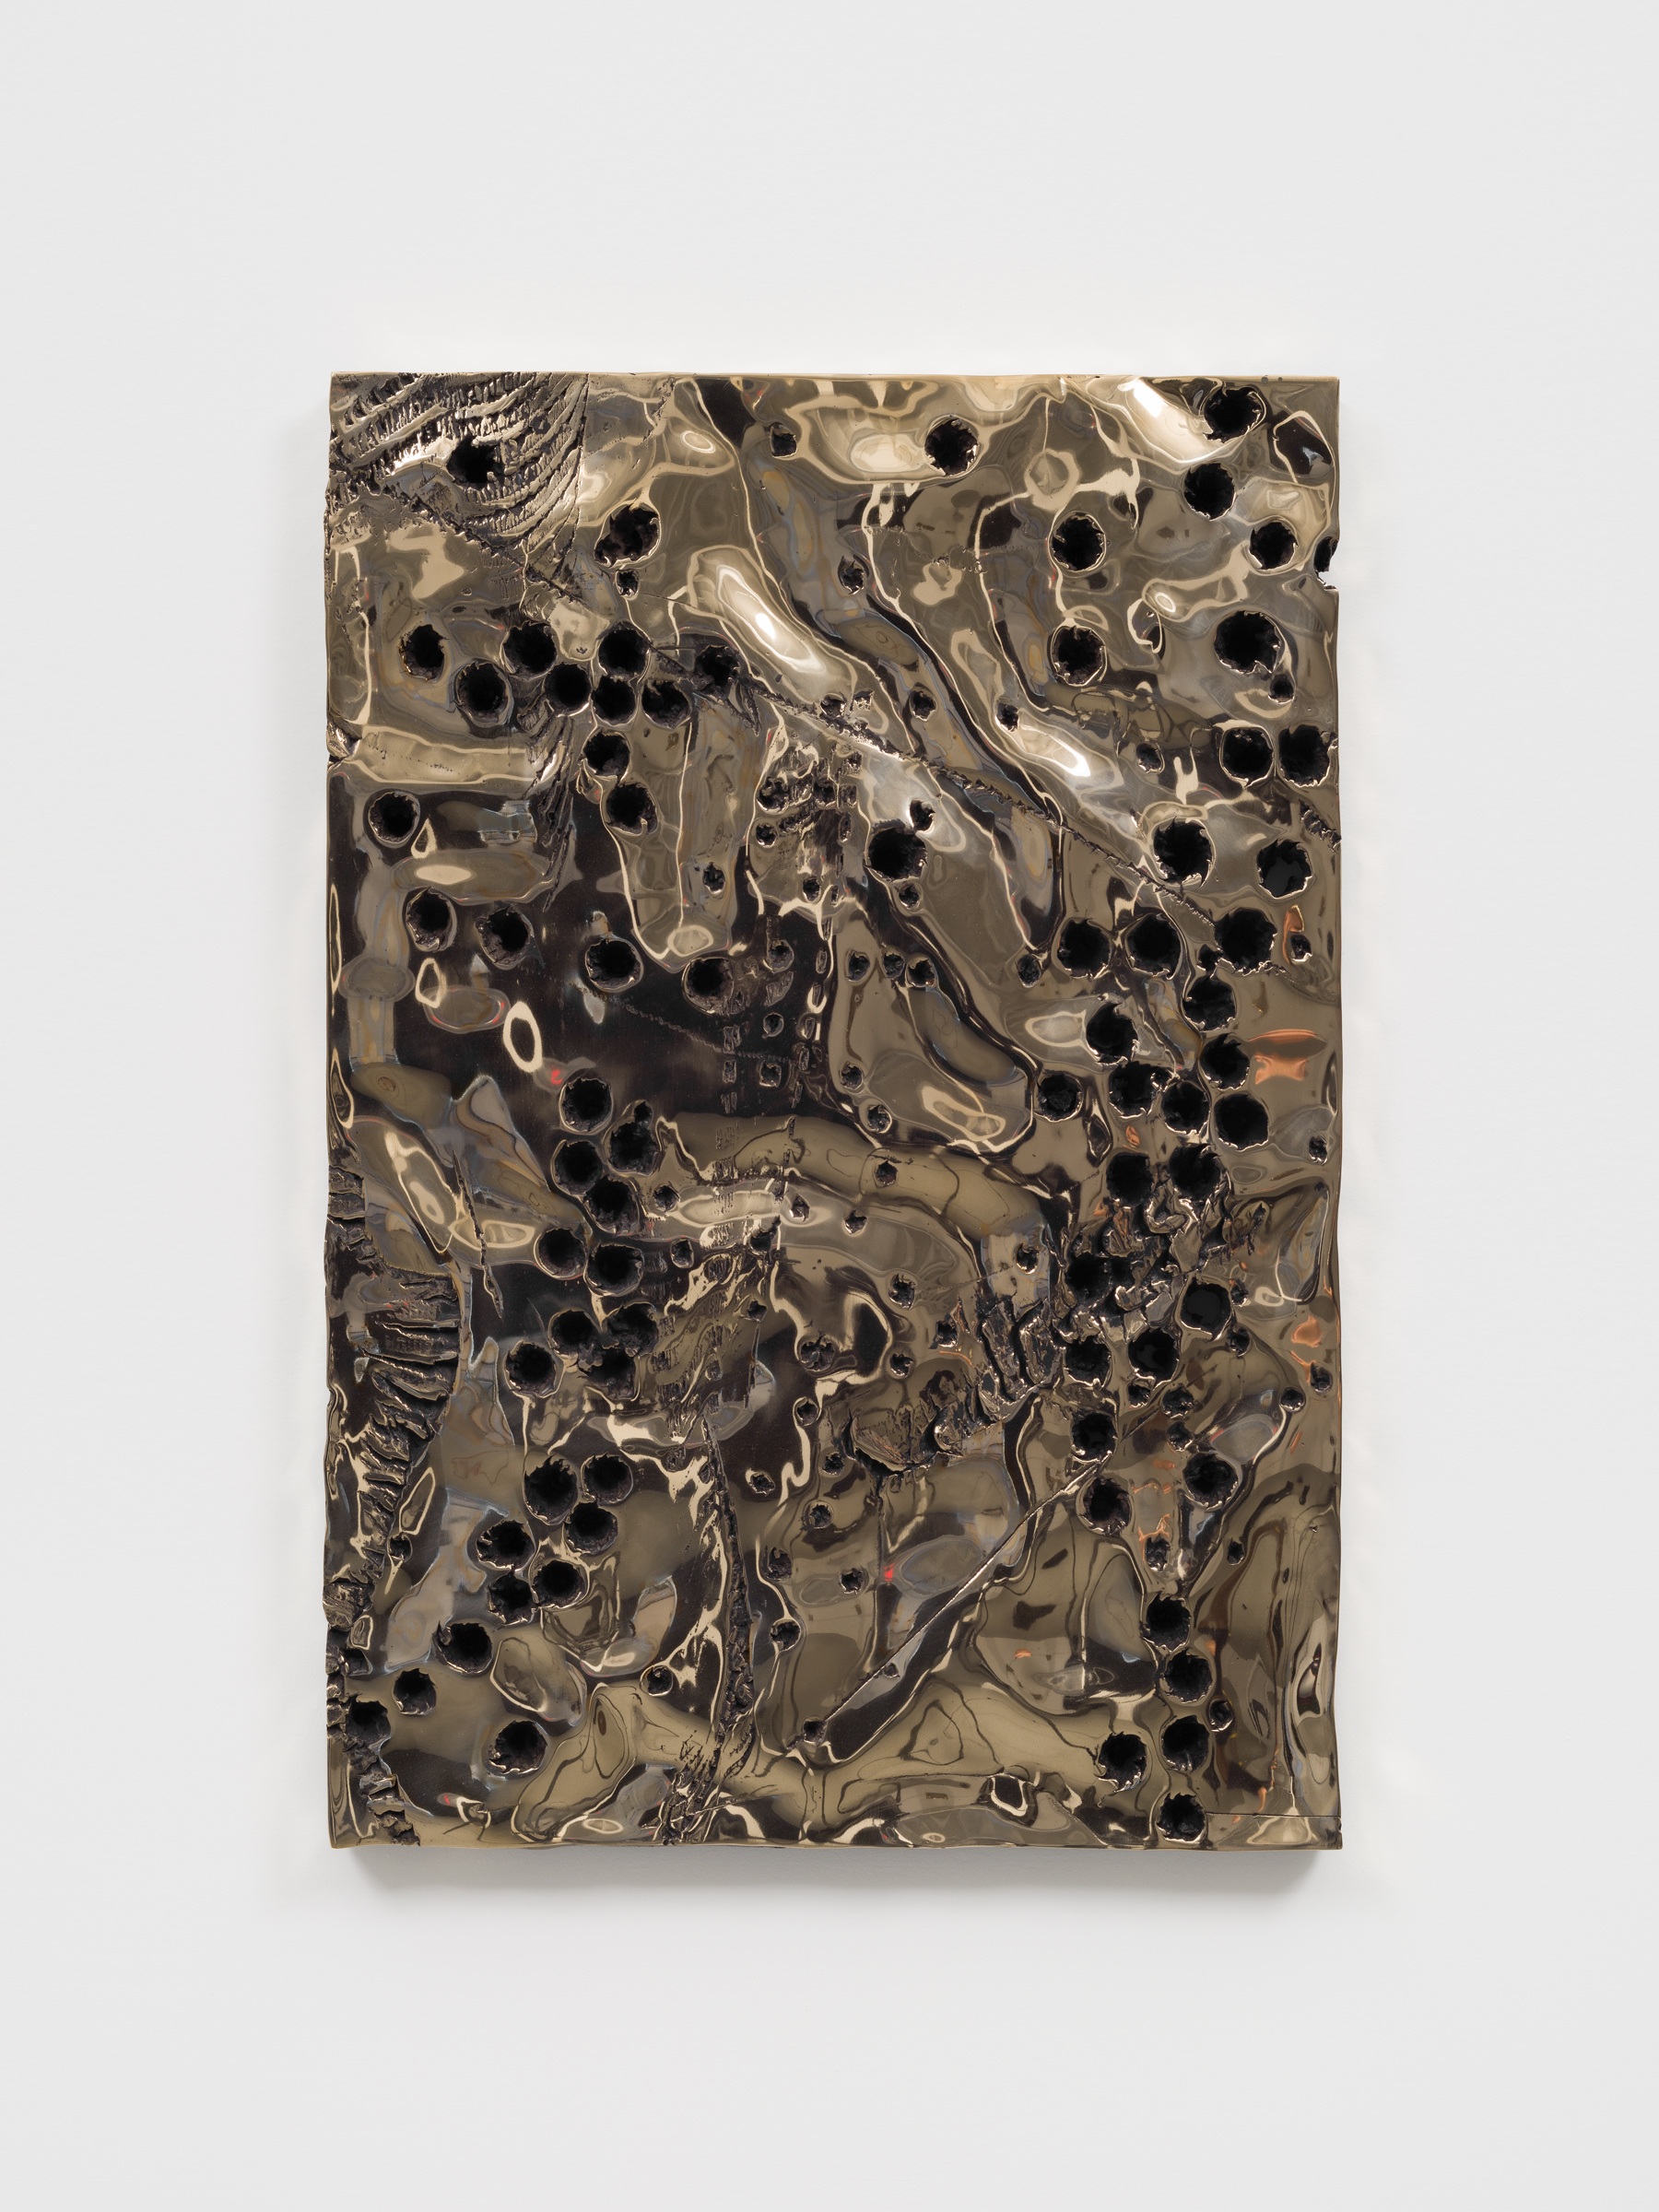 Davina Semo   Ripple,  2019 Polished and patinated cast bronze 23 3/4 x 16 1/4 inches